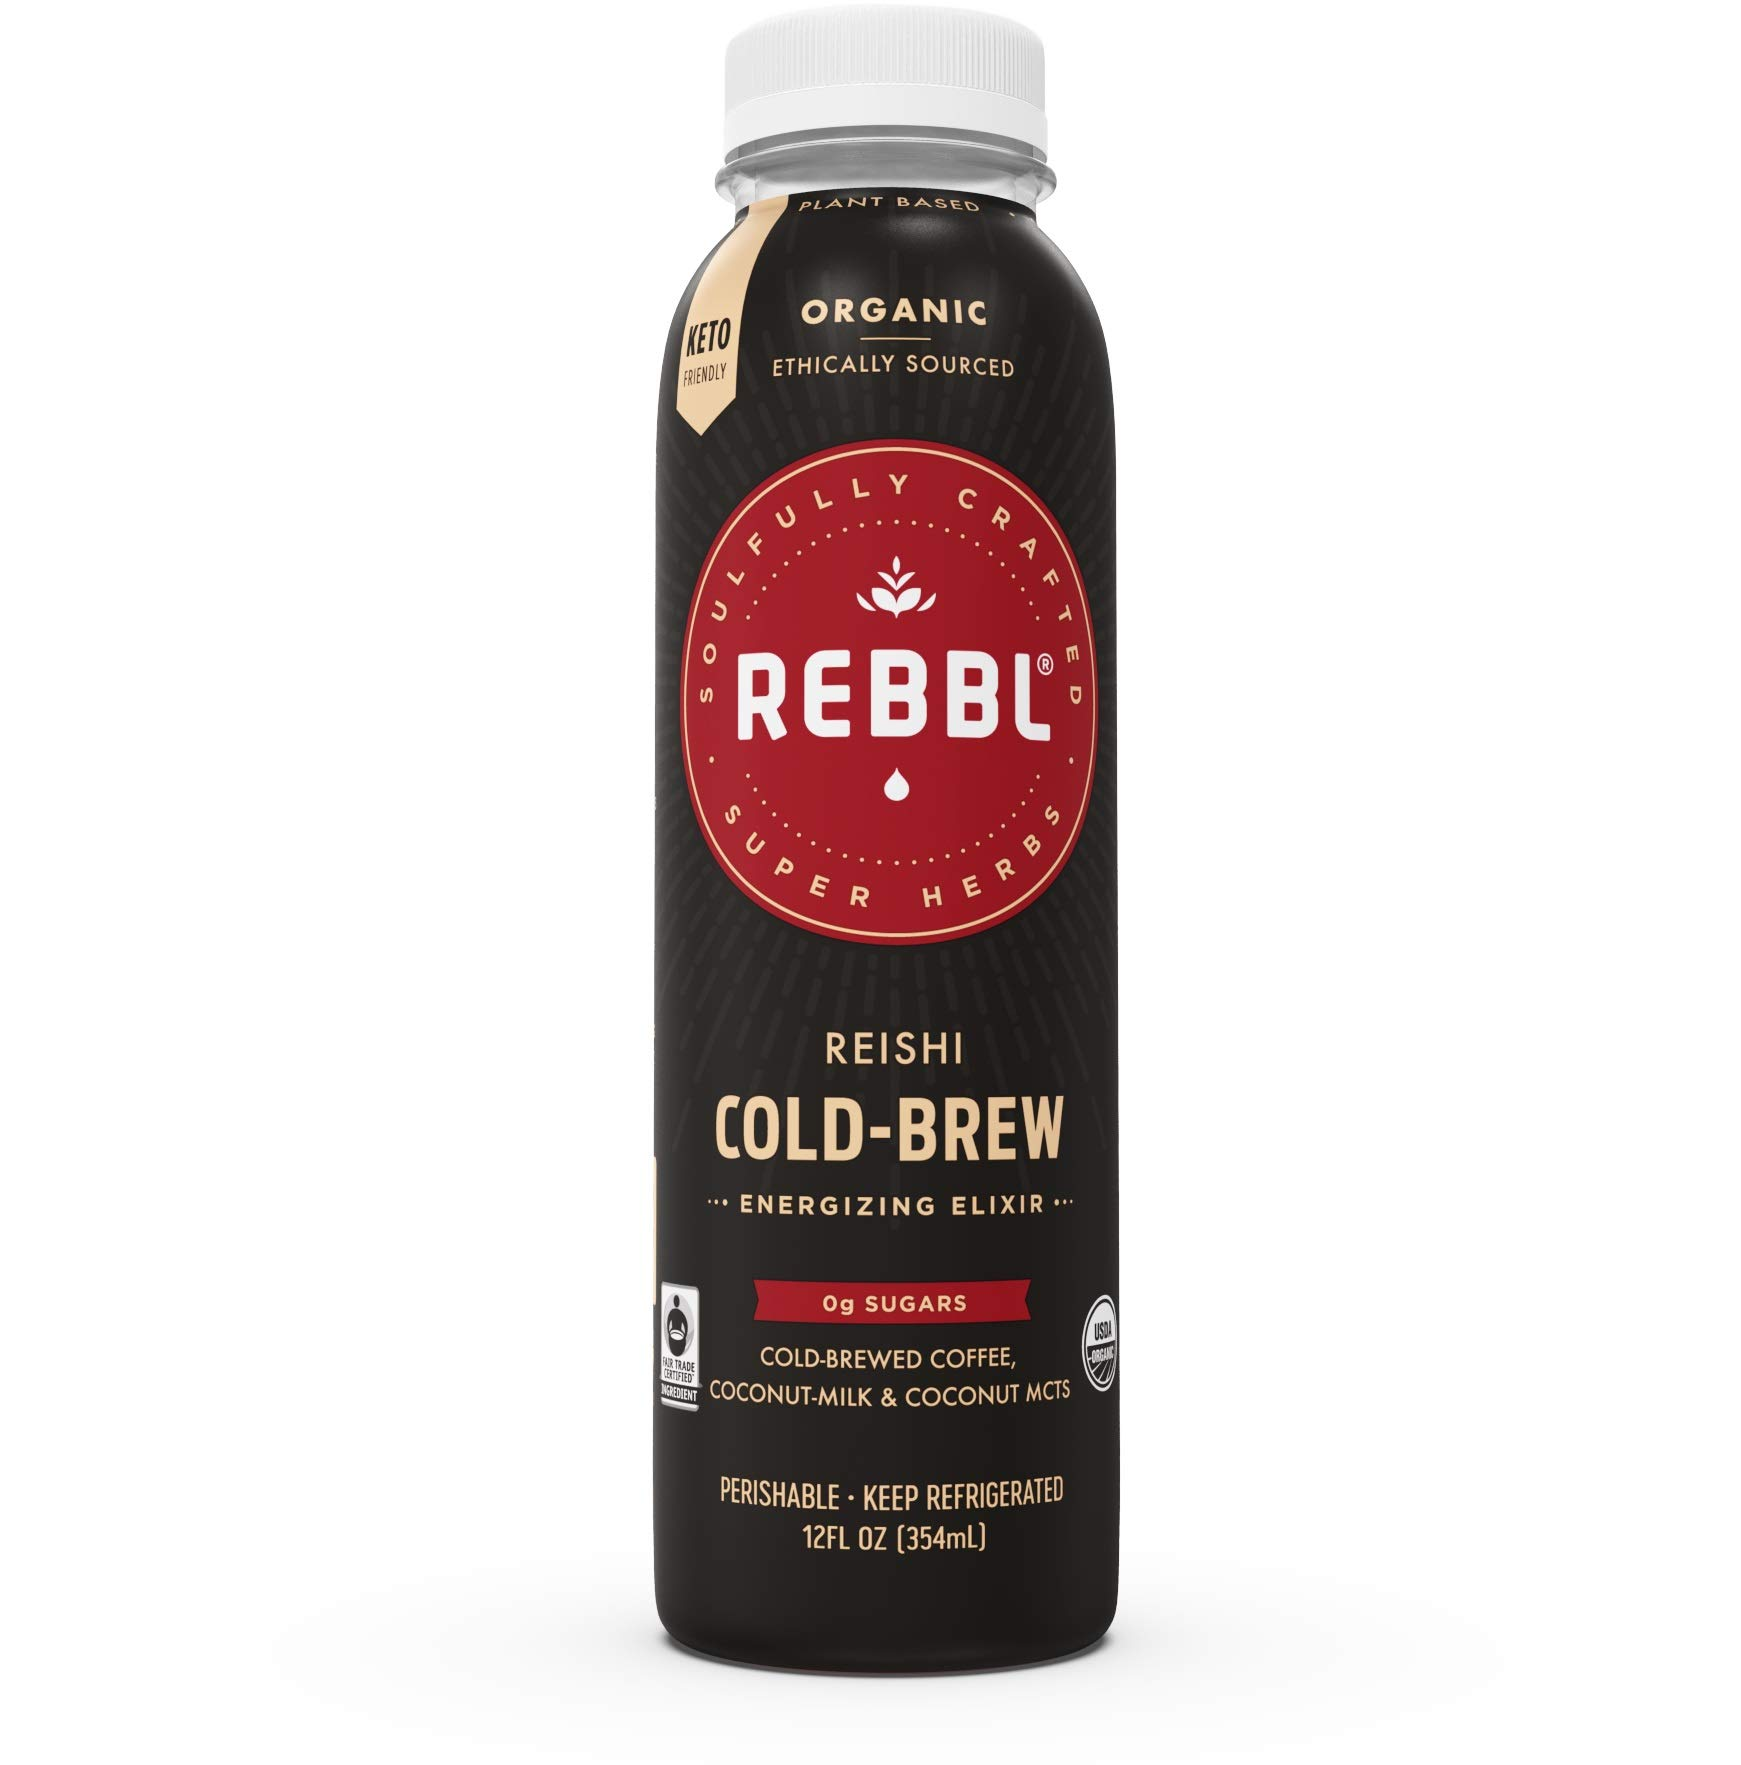 REBBL Super Herb Powered Elixirs | Reishi Cold Brew Coffee Elixir 12 Pack | 12 Fl Oz | Gluten Free, Organic, Non GMO, Vegan | 200mg 70% B-Glucan Reishi Extract, 7g Coconut MCTs